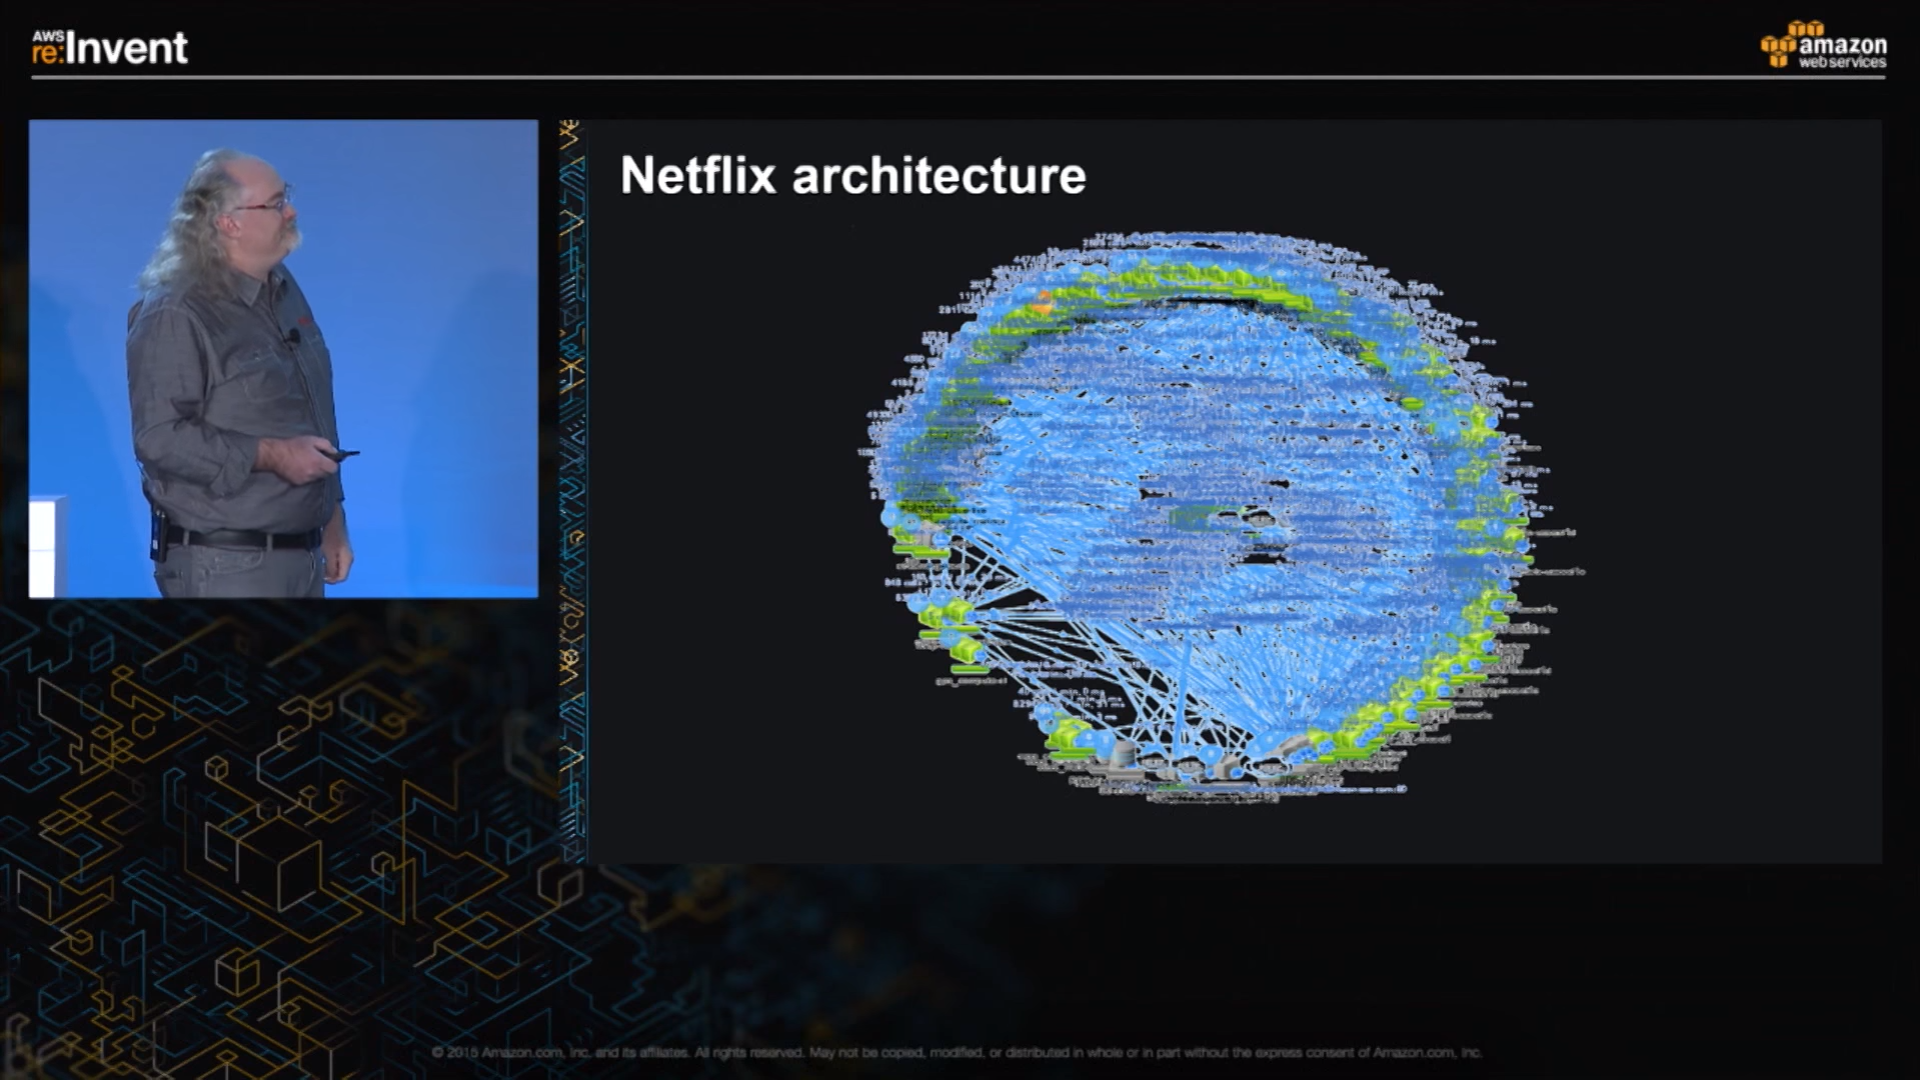 How Netflix Works The Hugely Simplified Complex Stuff That To Understand Electrical Diagnosis By Using Wiring Diagrams Youtube Dave Hahn A Senior Engineer From Netflixs Performance And Reliability Department Shows Off Entire Architecture Of In One Flow Diagram